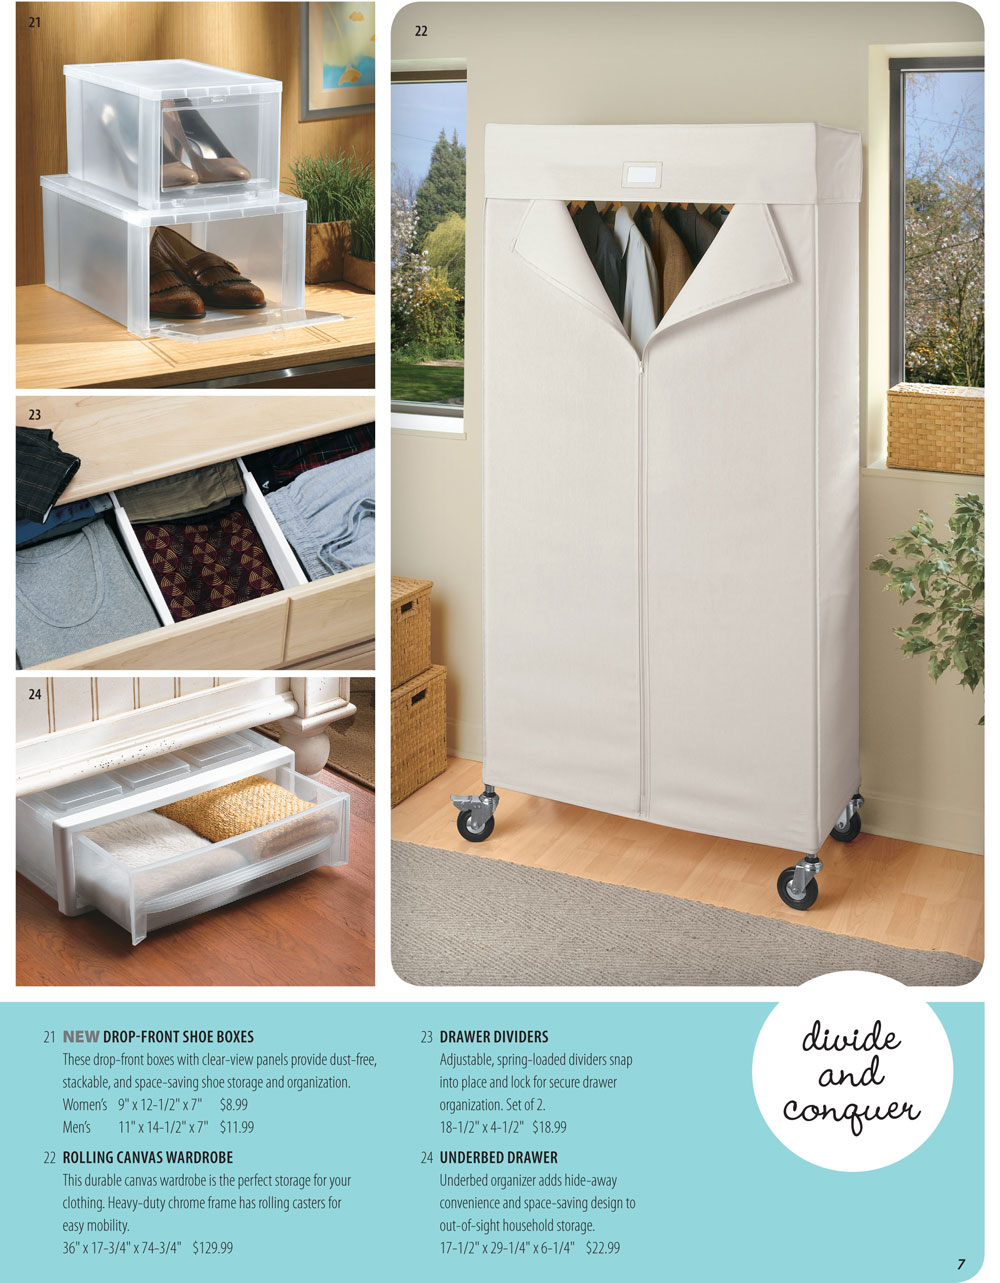 Organize It Spring Catalog Page 7